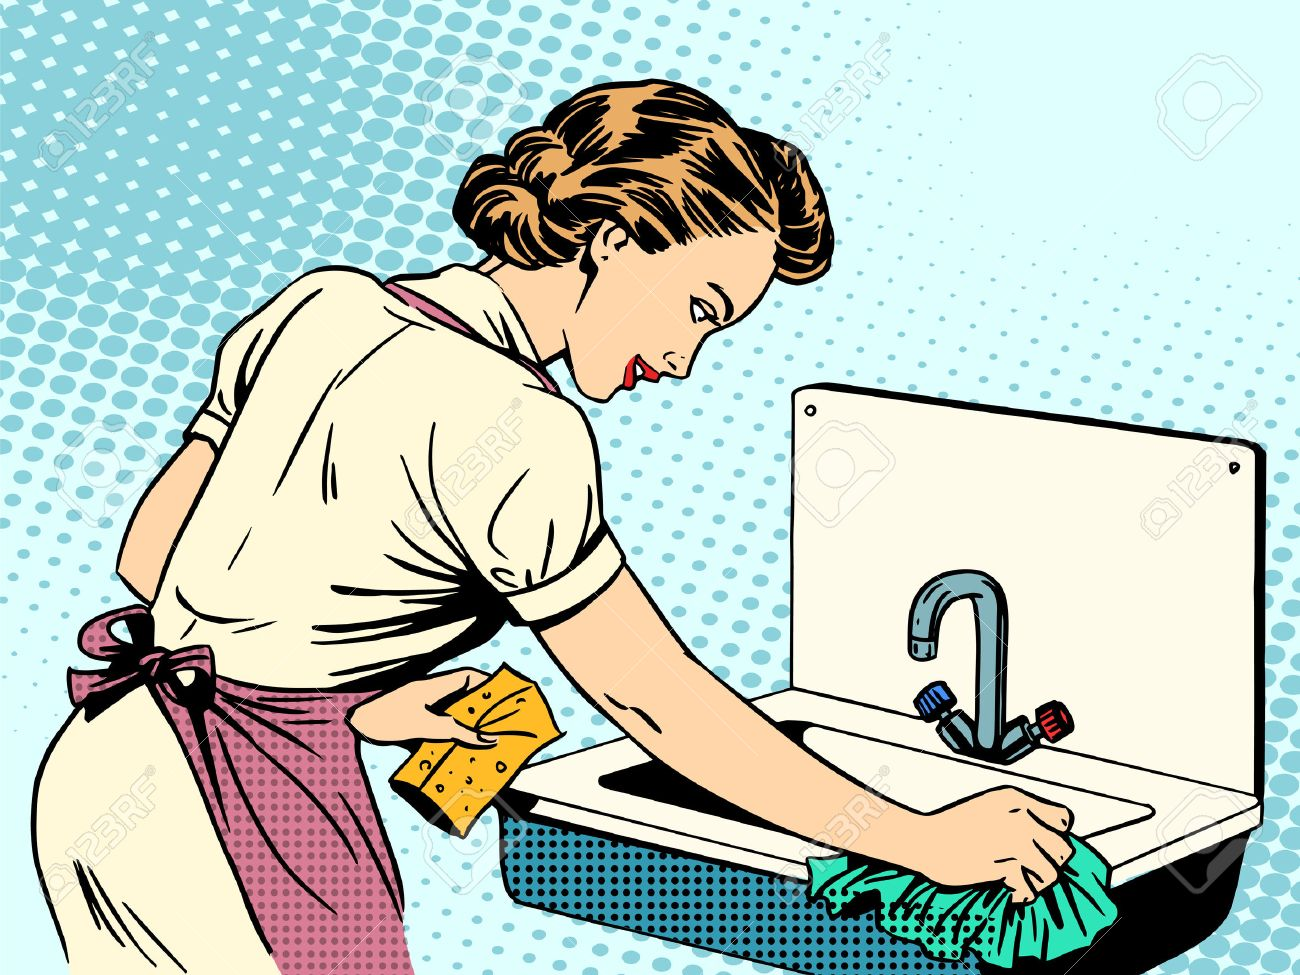 Clean bathroom sink clip art - Clean Kitchen Woman Cleans Kitchen Sink Cleanliness Housewife Housework Comfort Retro Style Pop Art